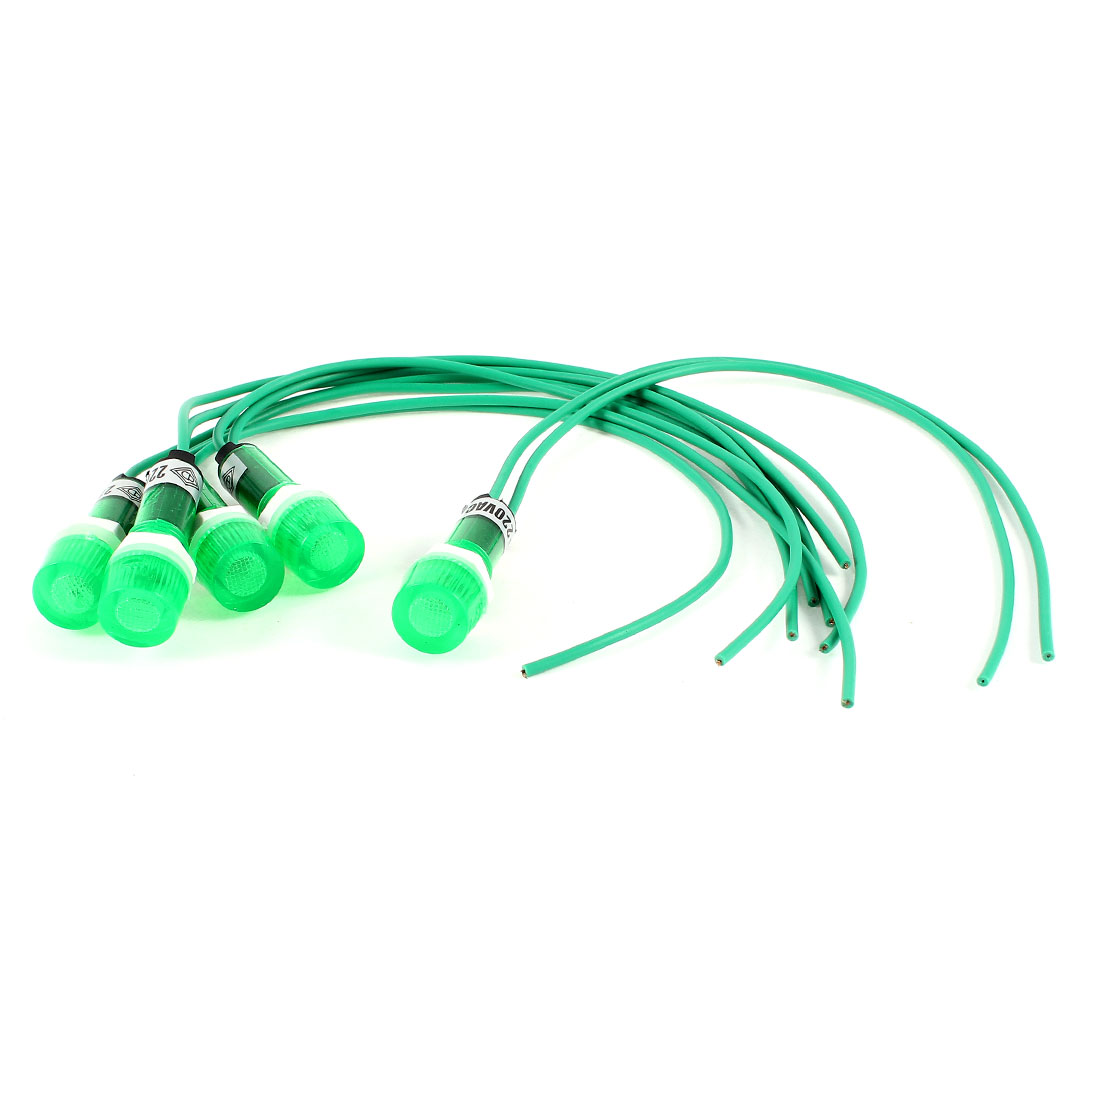 5Pcs AC 220V Cylinder 2-Wired Green LED Accident Alarm Signal Pilot Lamp 23cm